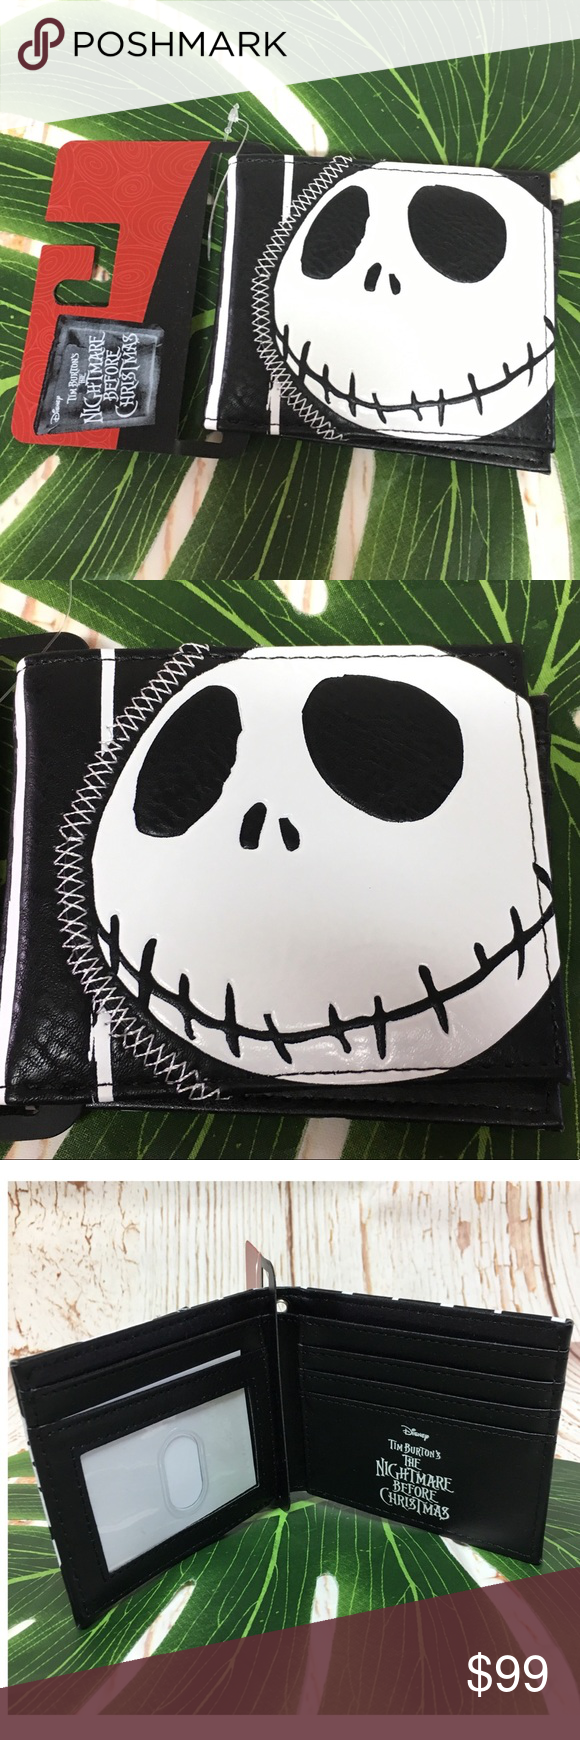 Nightmare Before Christmas Wallet Cover Case fit For ... |Slot Nightmare Before Christmas